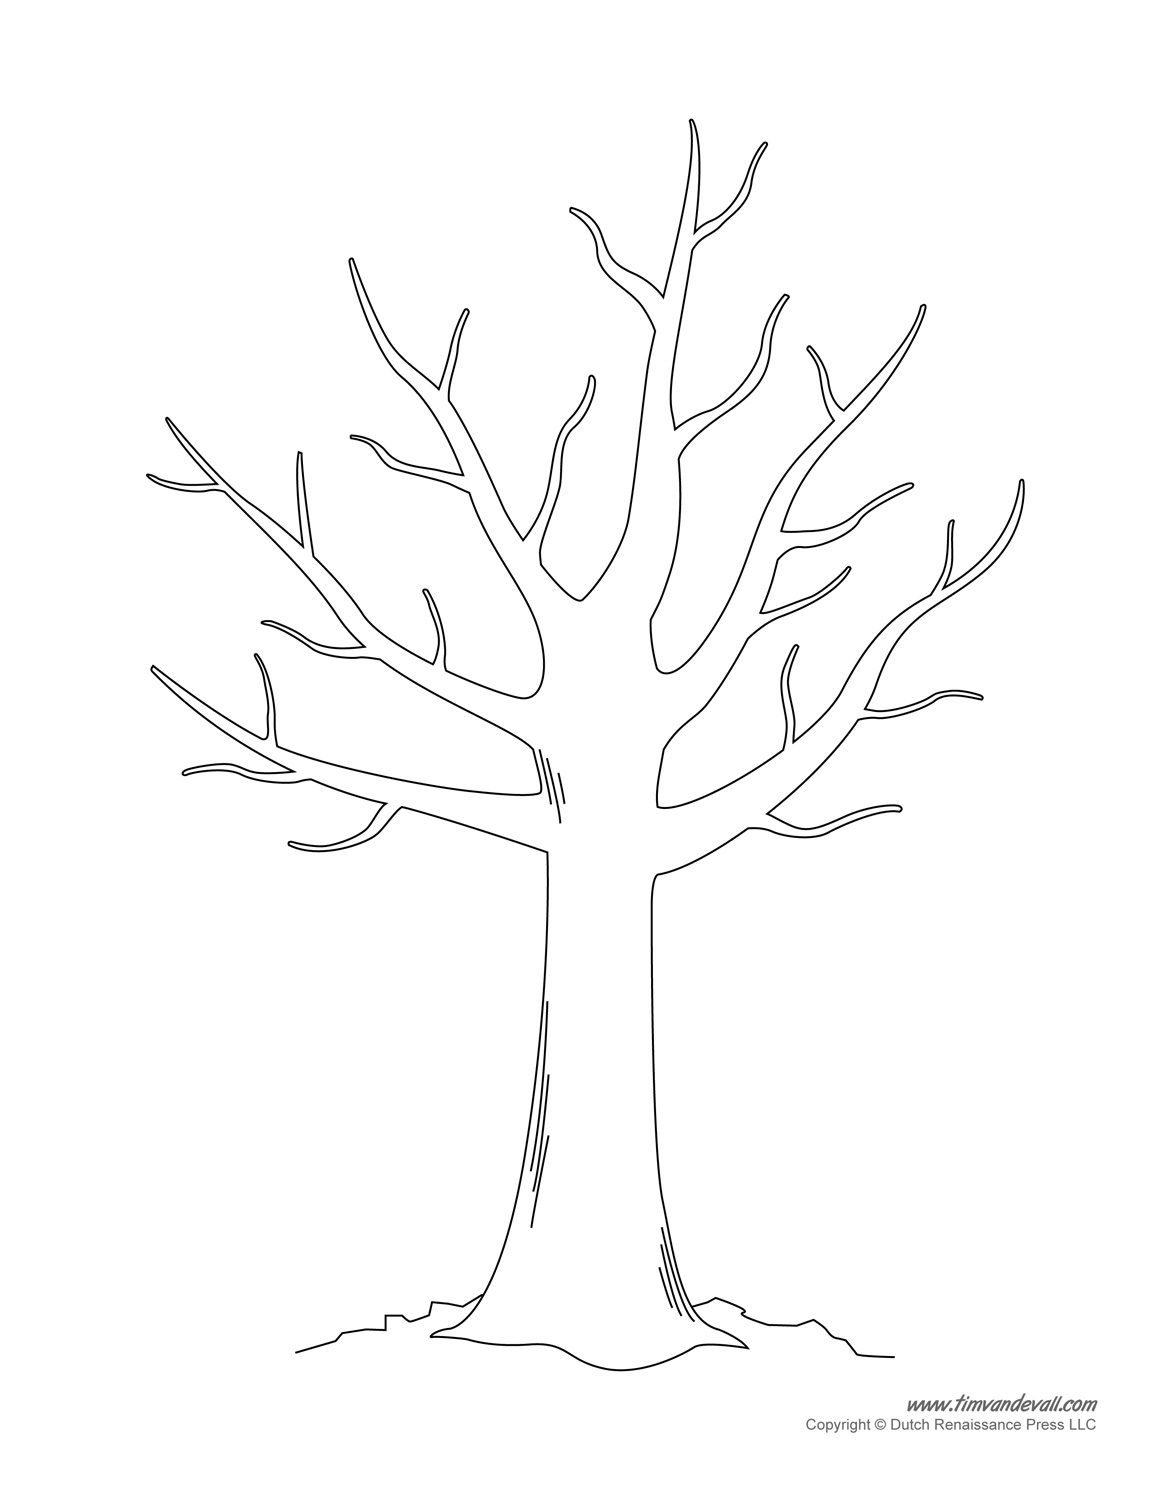 graphic relating to Printable Tree Stencil identified as Tree Templates Tree Printables